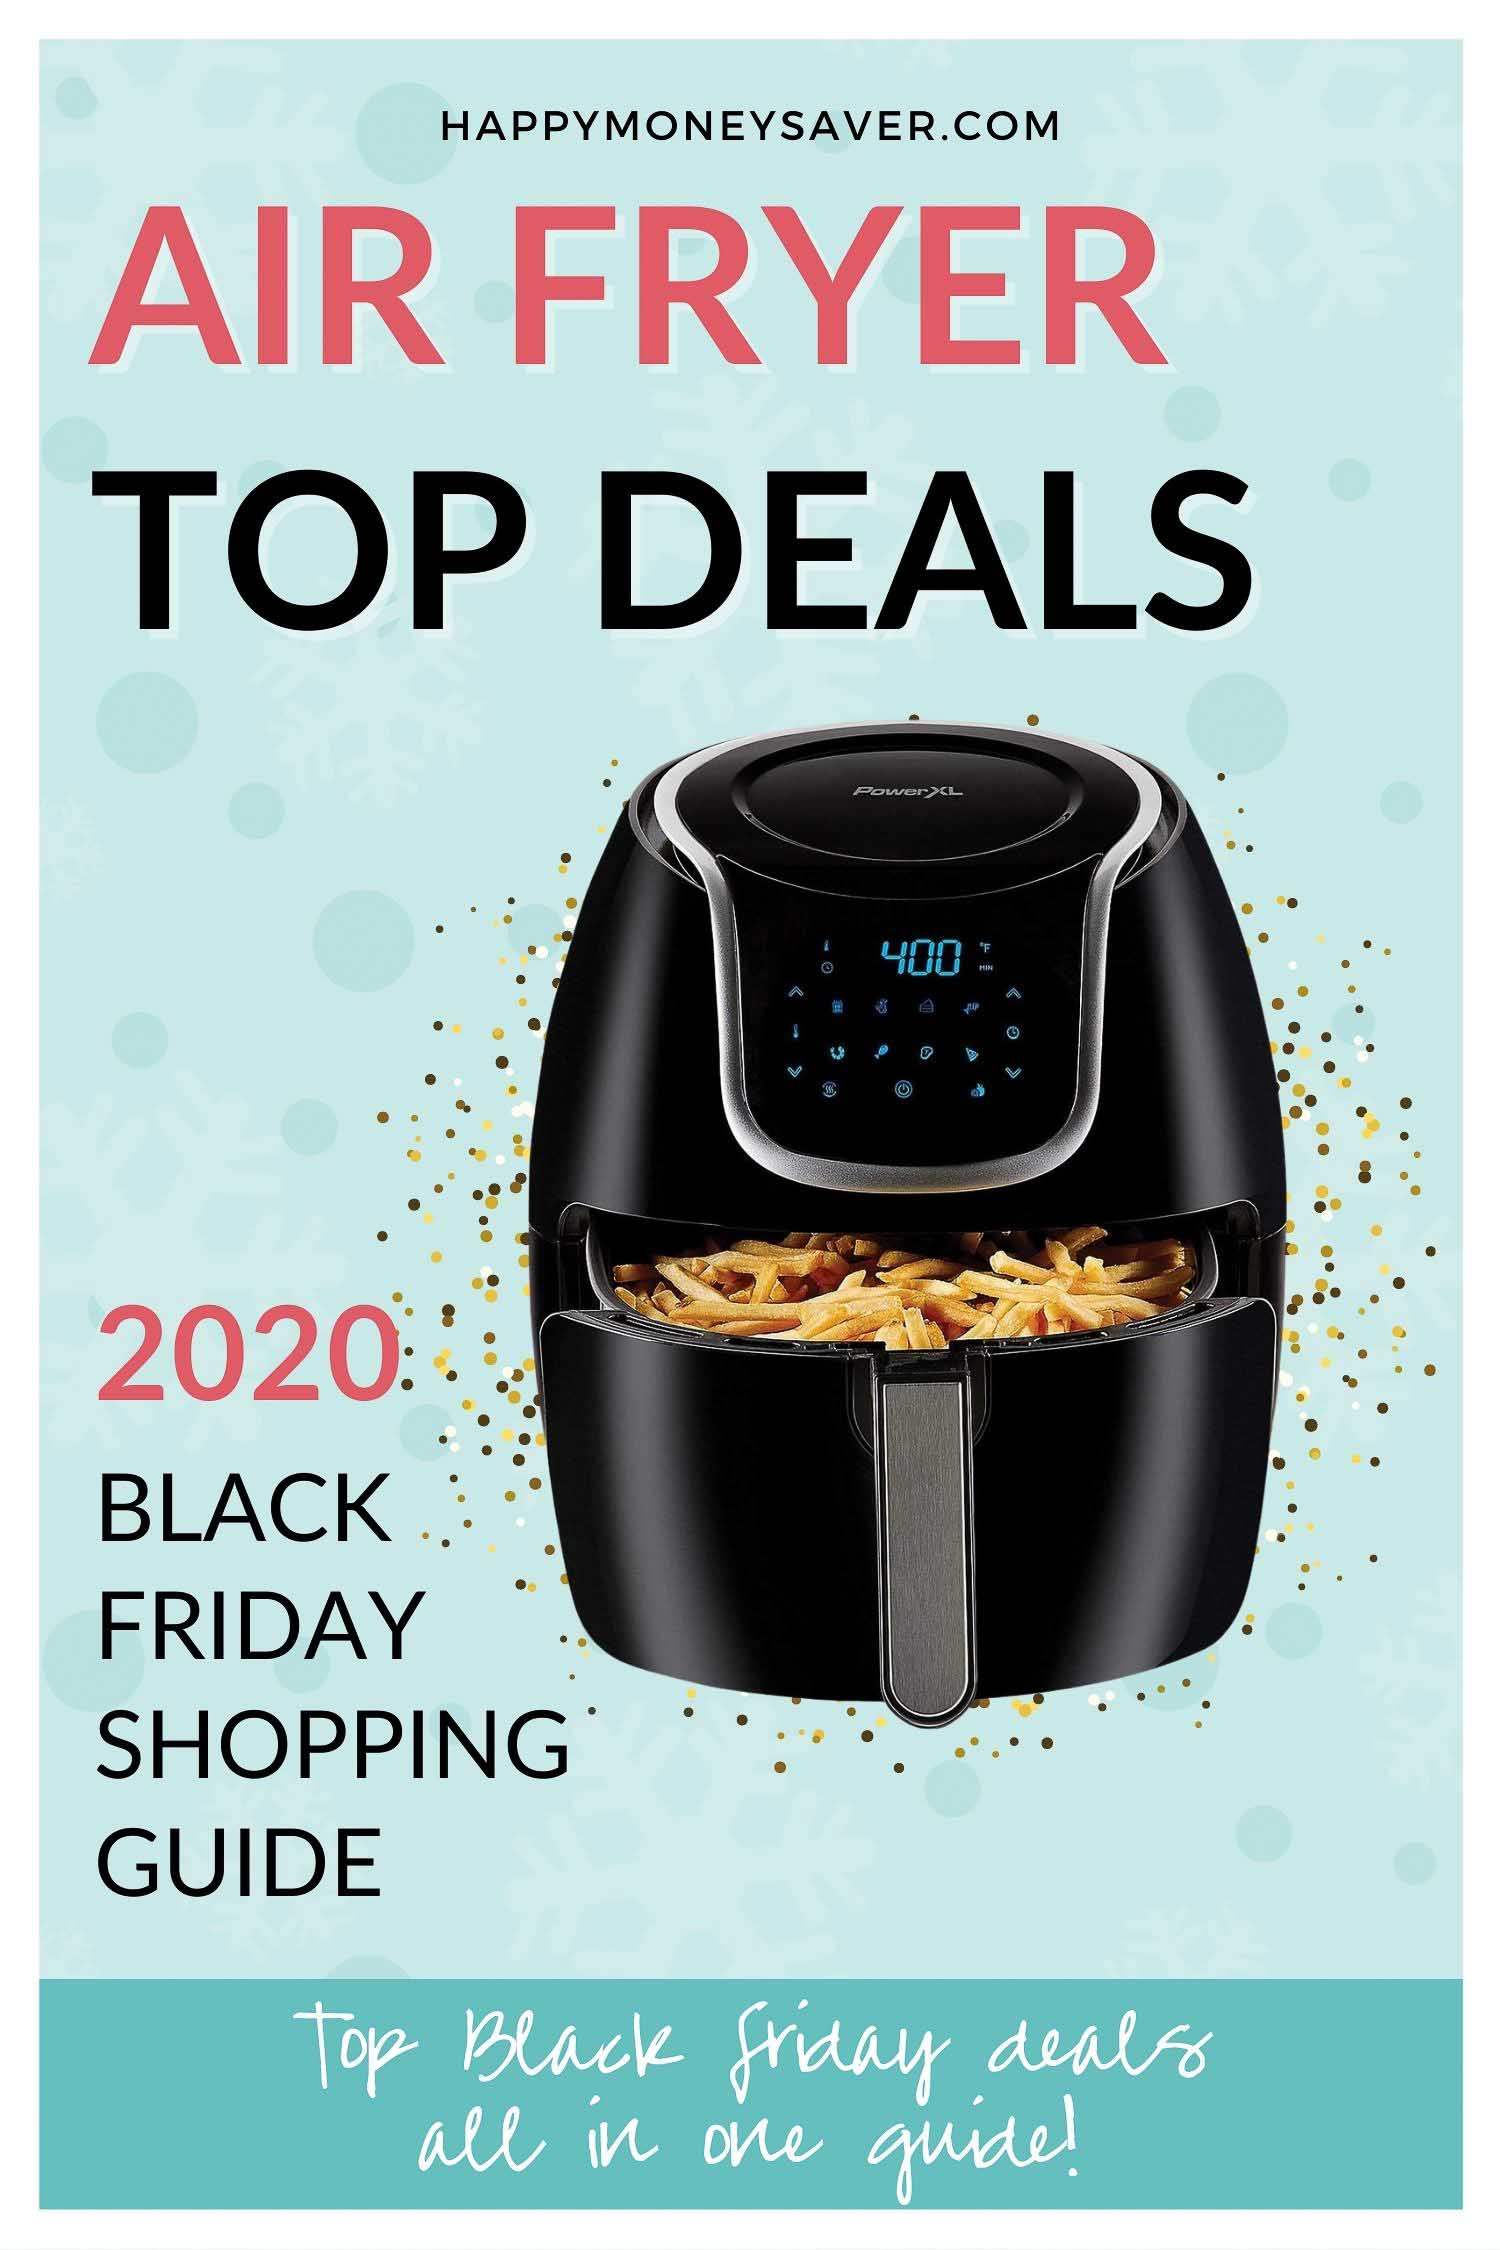 Top Airfryer Deals for Black Friday 2020 with amazon links included graphic with picture of airfryer holding fries.